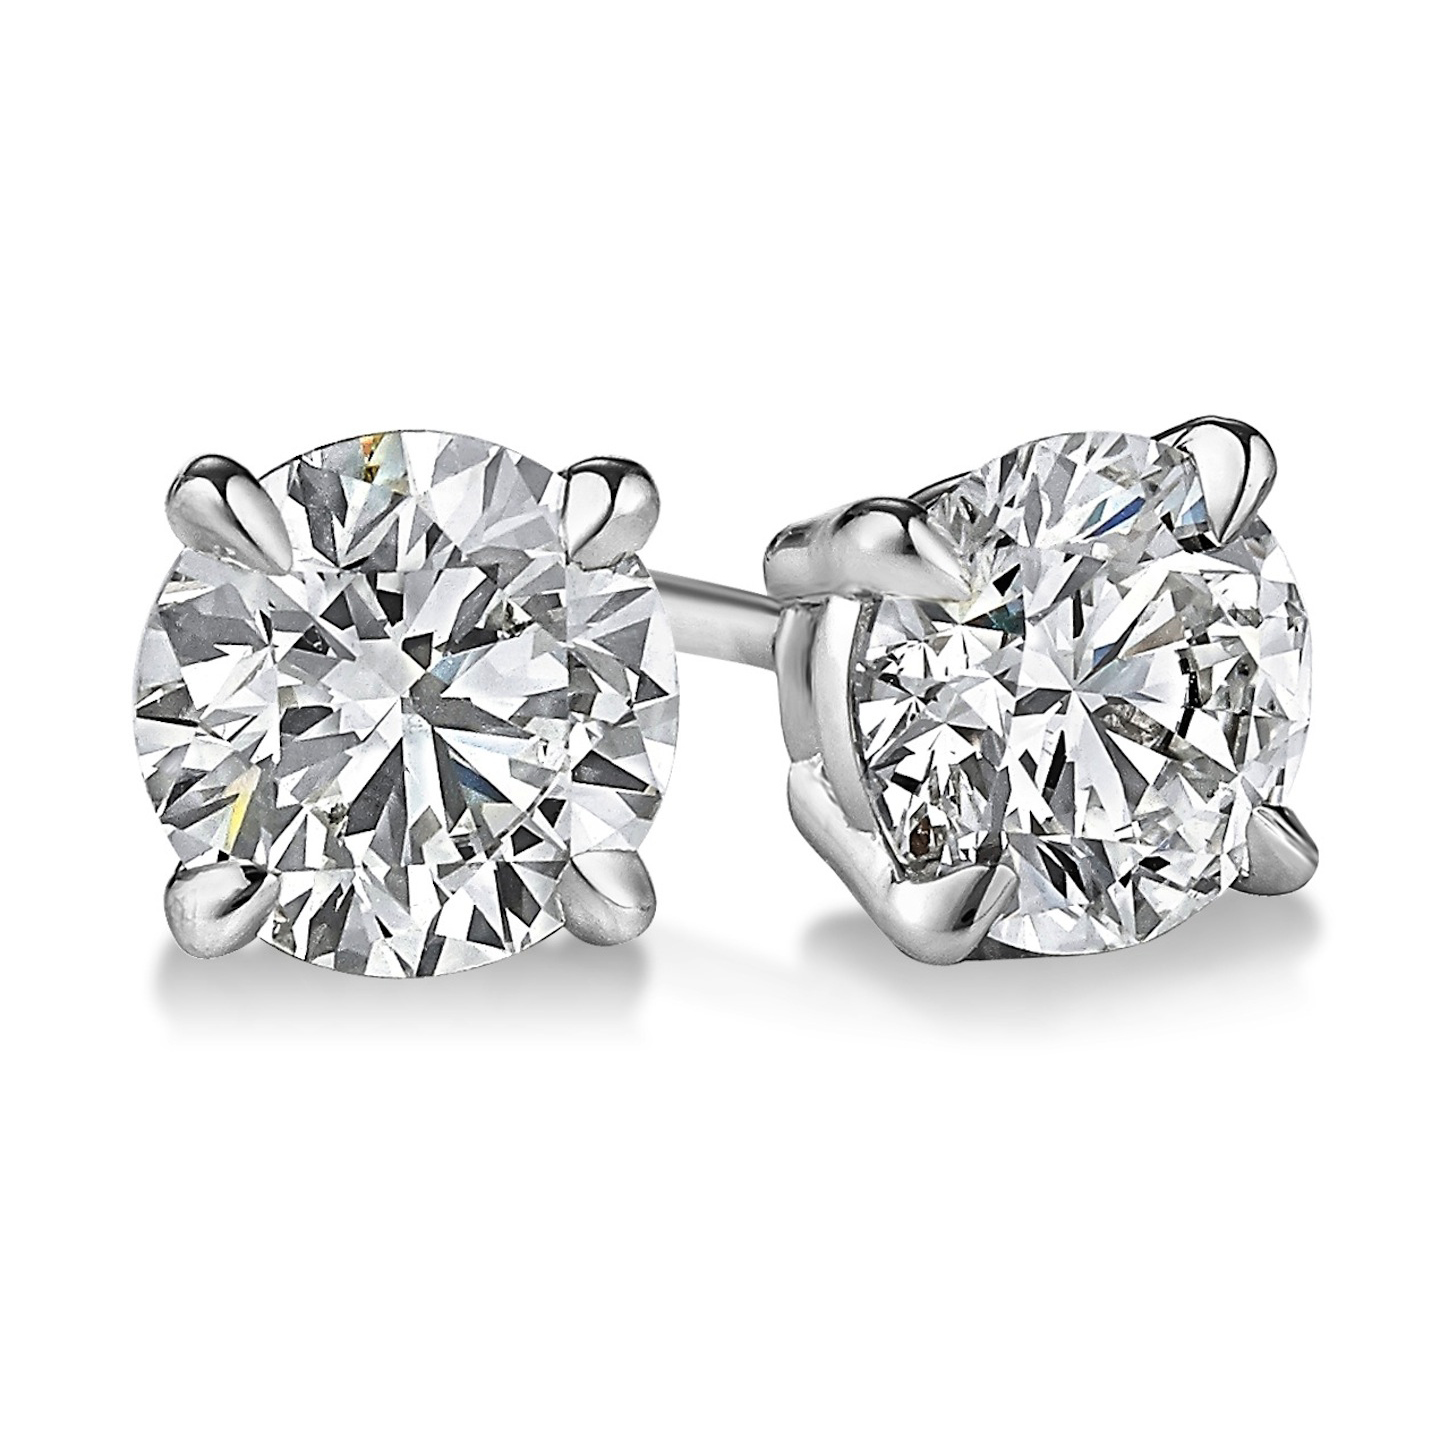 jewellery studs gold stud goldsmith the diamond village earrings white dimond